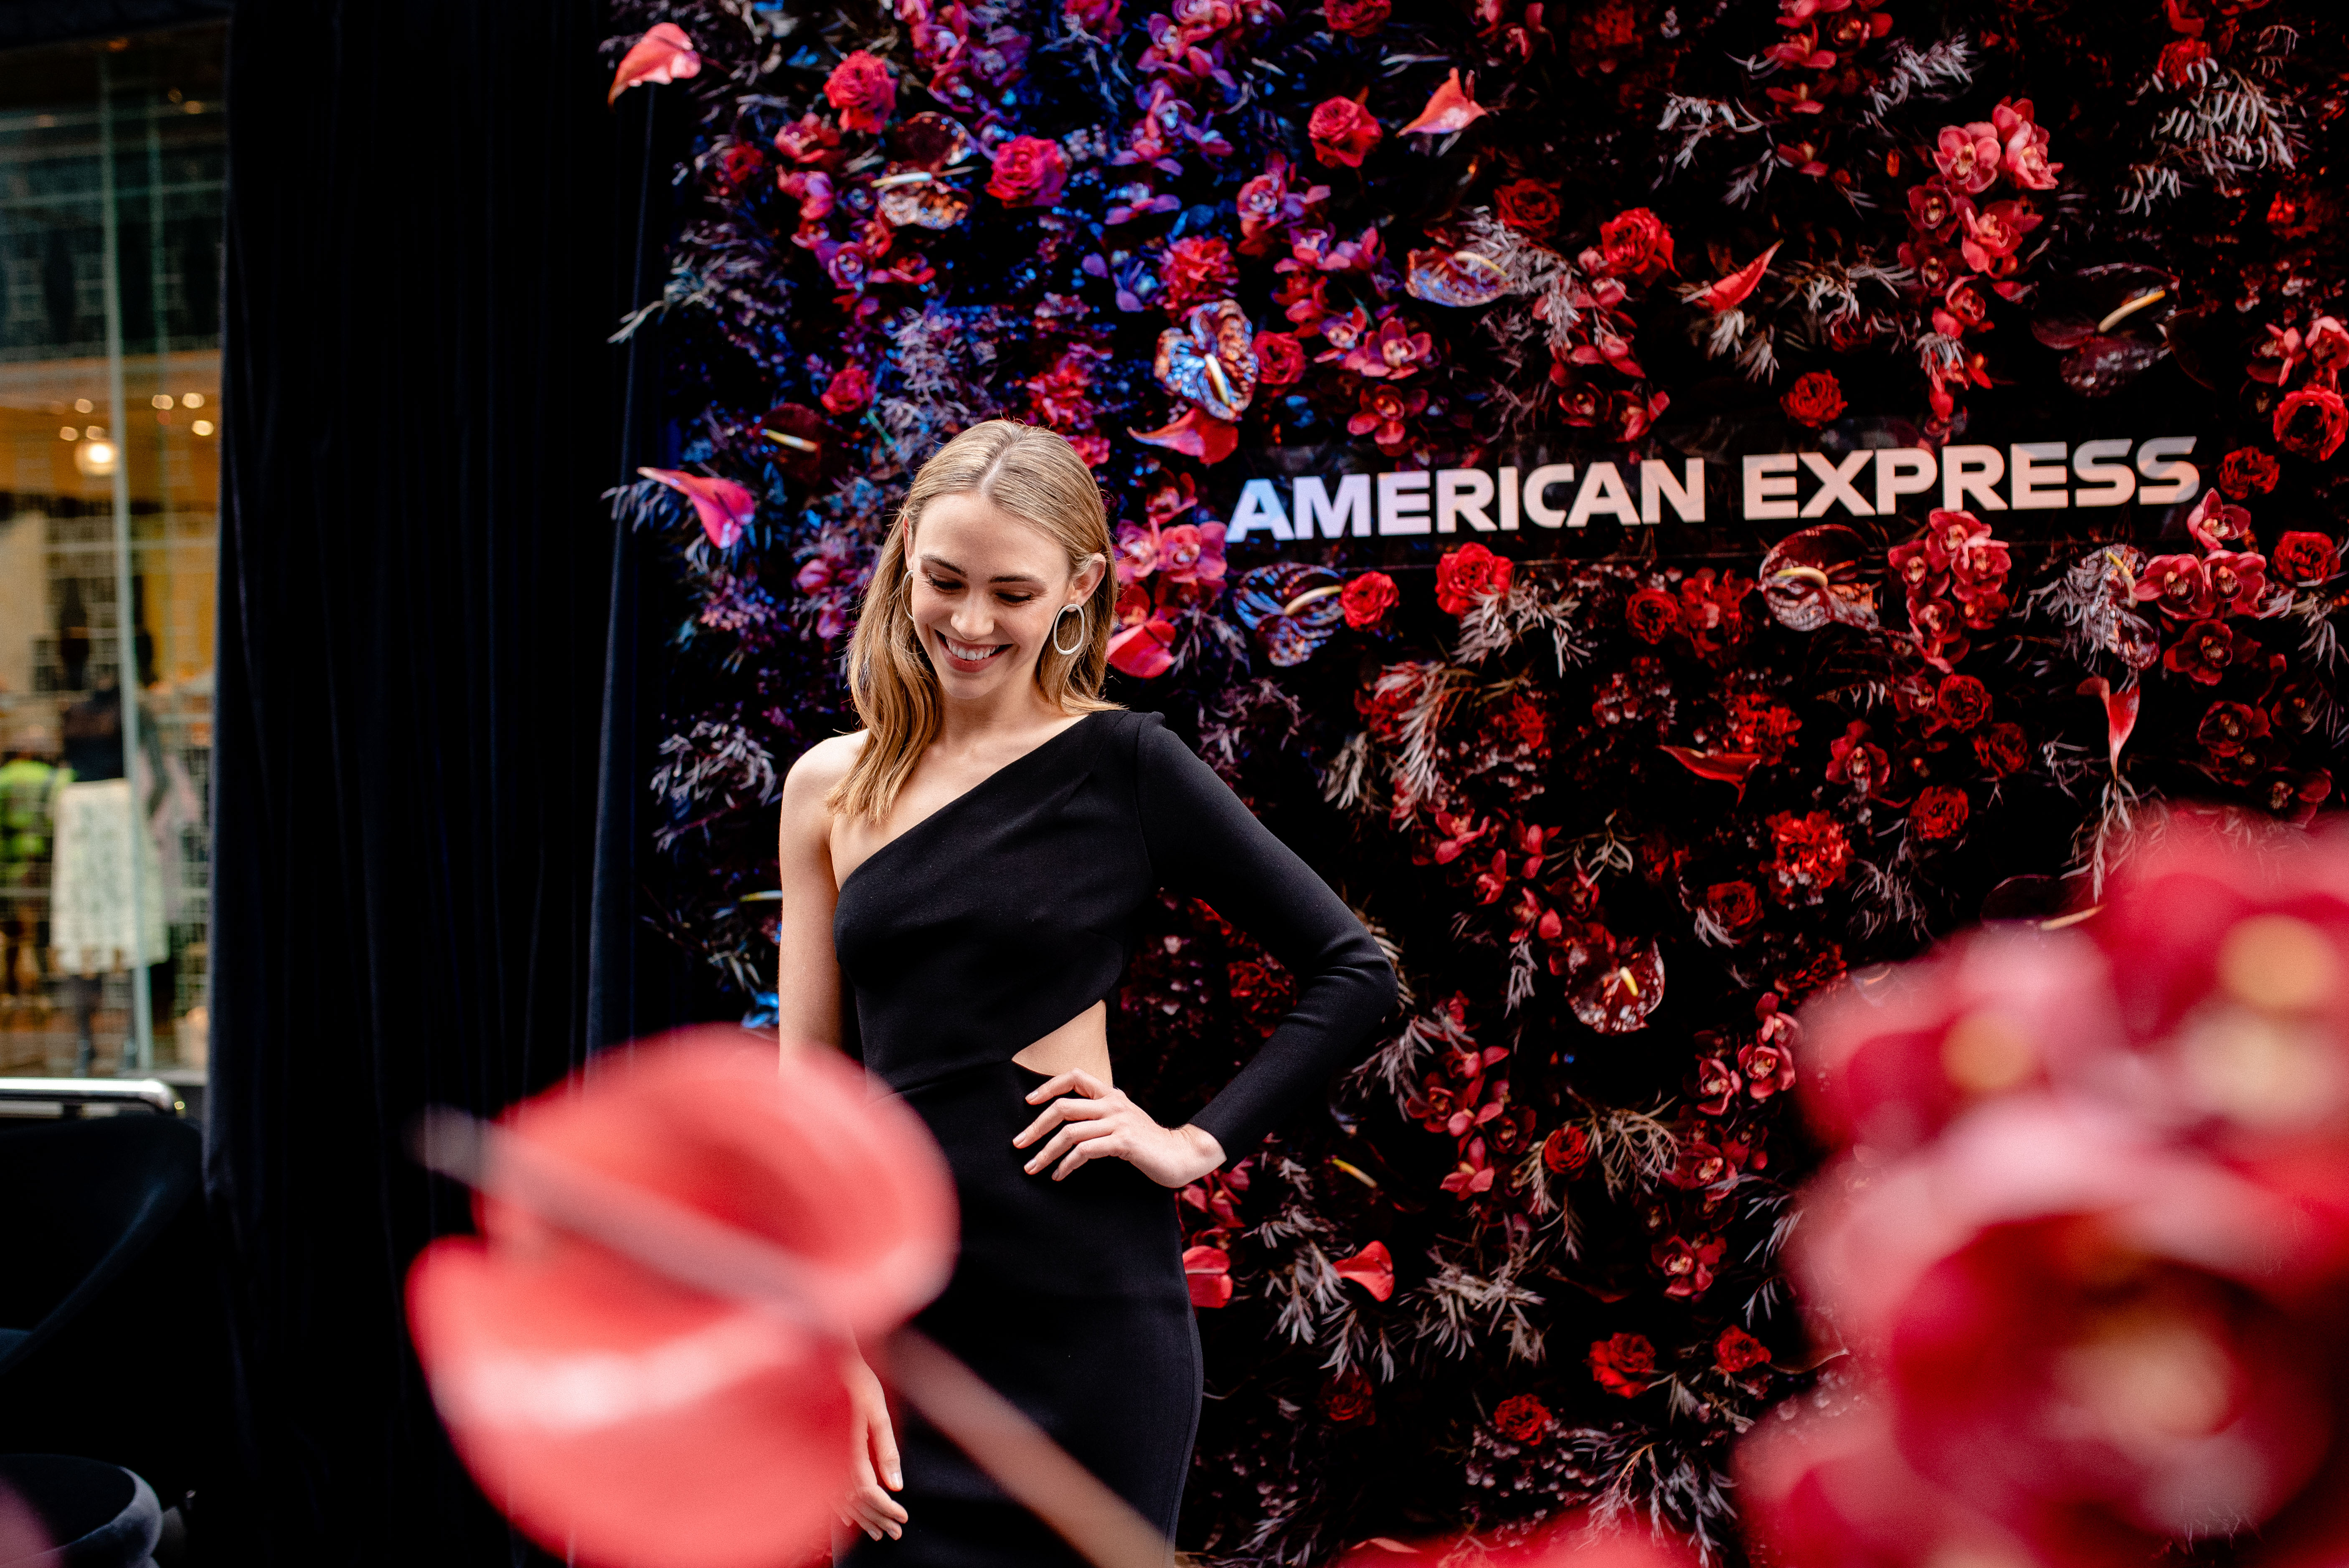 American Express appoints Sydney-based Studio Messa to brand experience agency roster